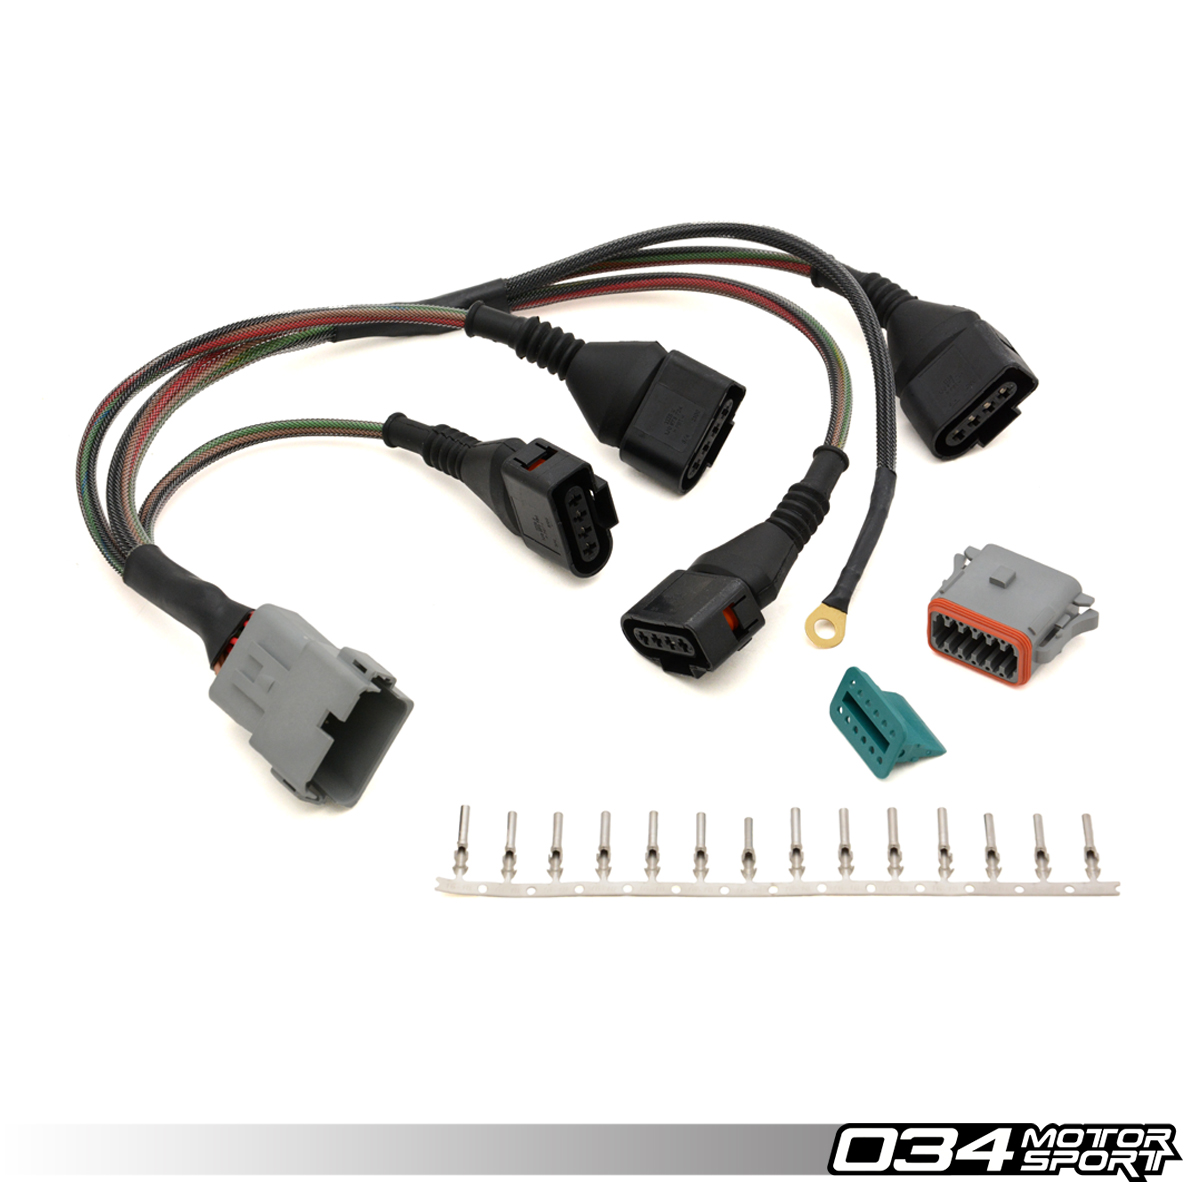 repair update harness audi volkswagen 18t with 4 wire coils 034motorsport 034 701 0004 2 repair update harness, audi volkswagen 1 8t with 4 wire coils audi wiring harness at crackthecode.co